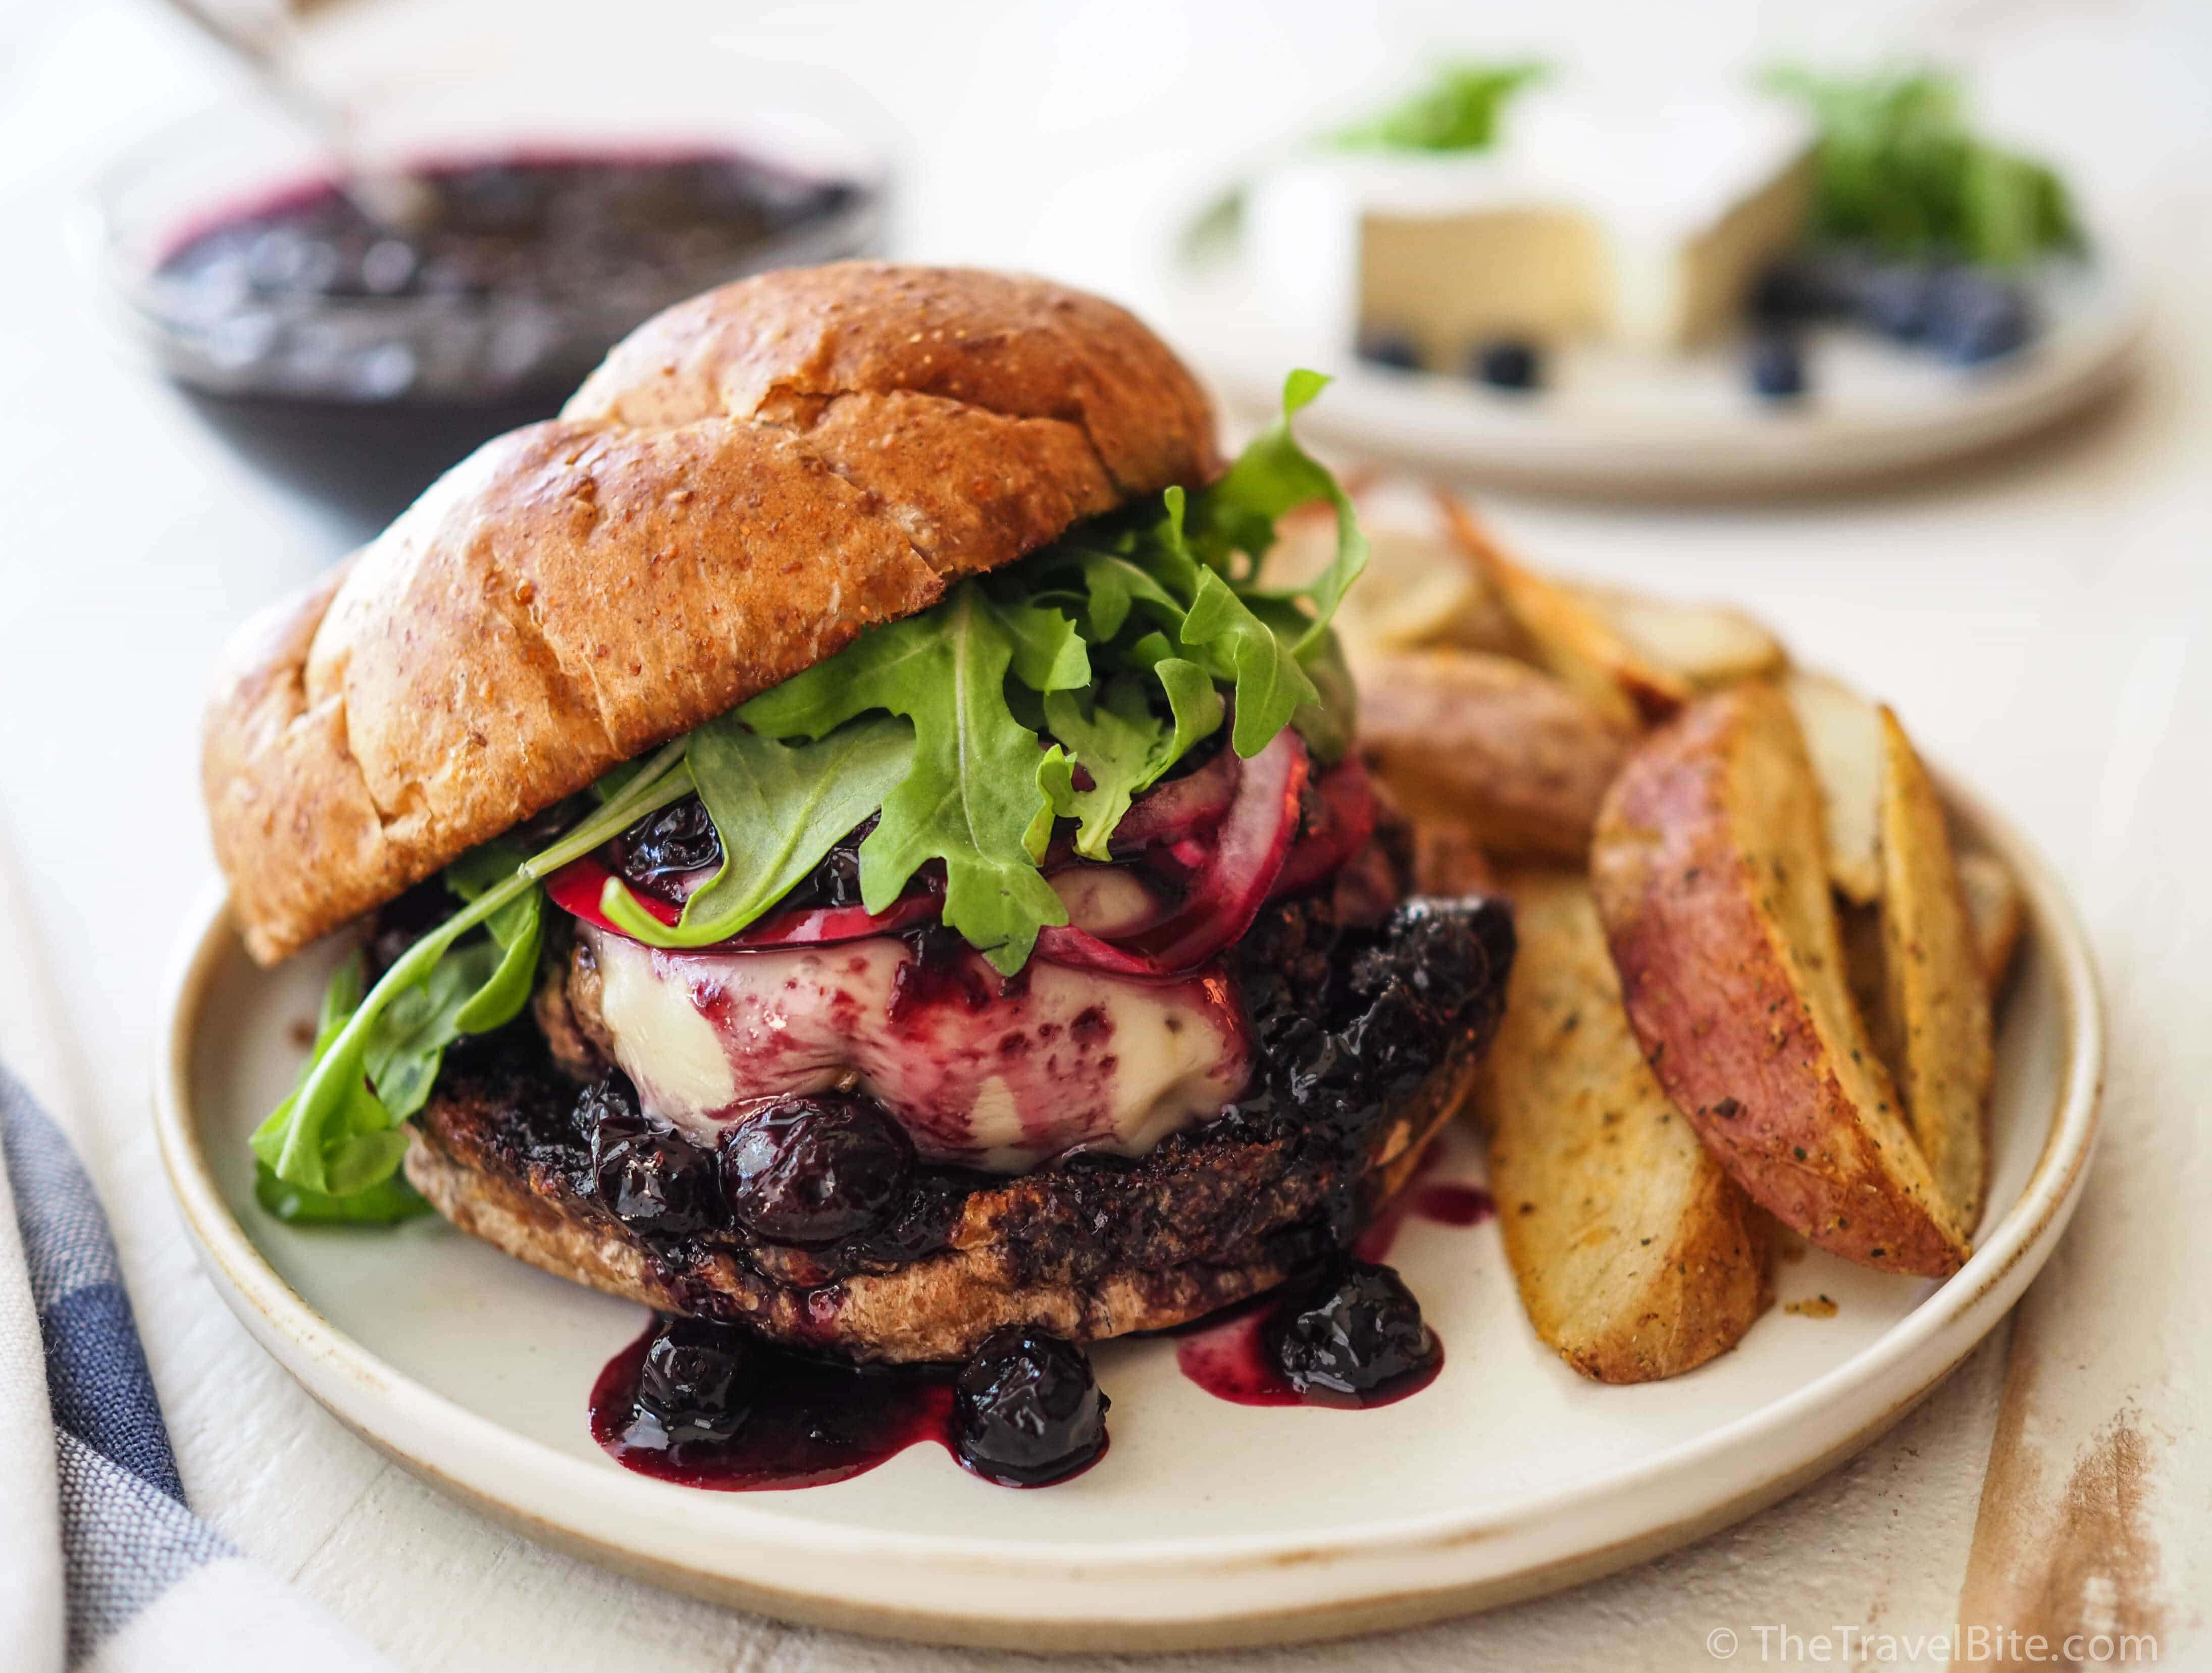 Balsamic Blueberry & Brie Burgers